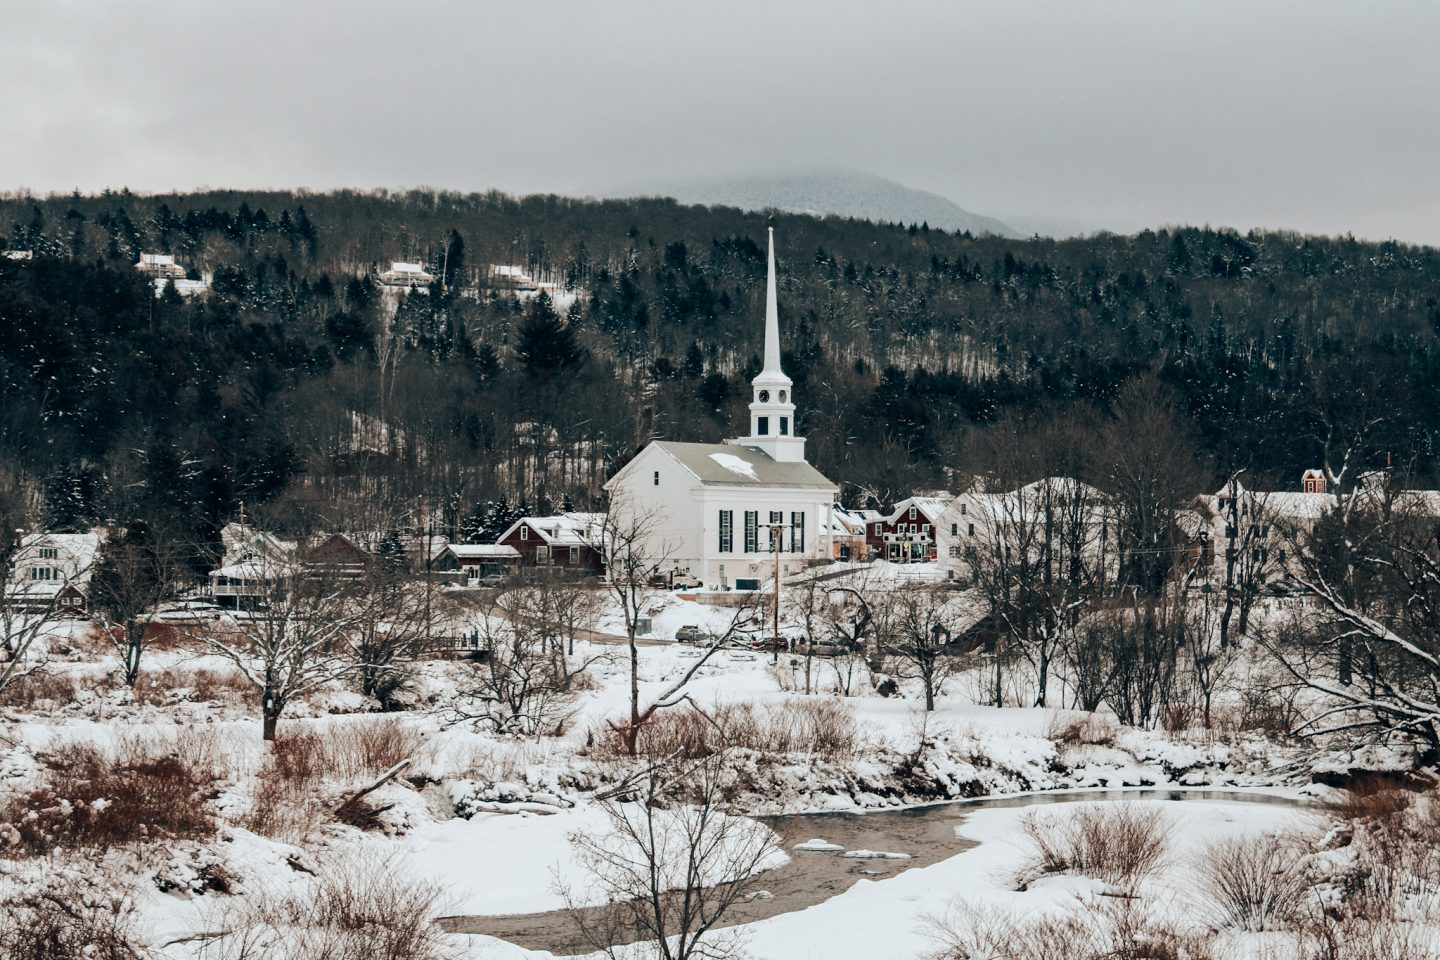 View of Stowe, VT from the Salon Salon parking lot during a winter weekend